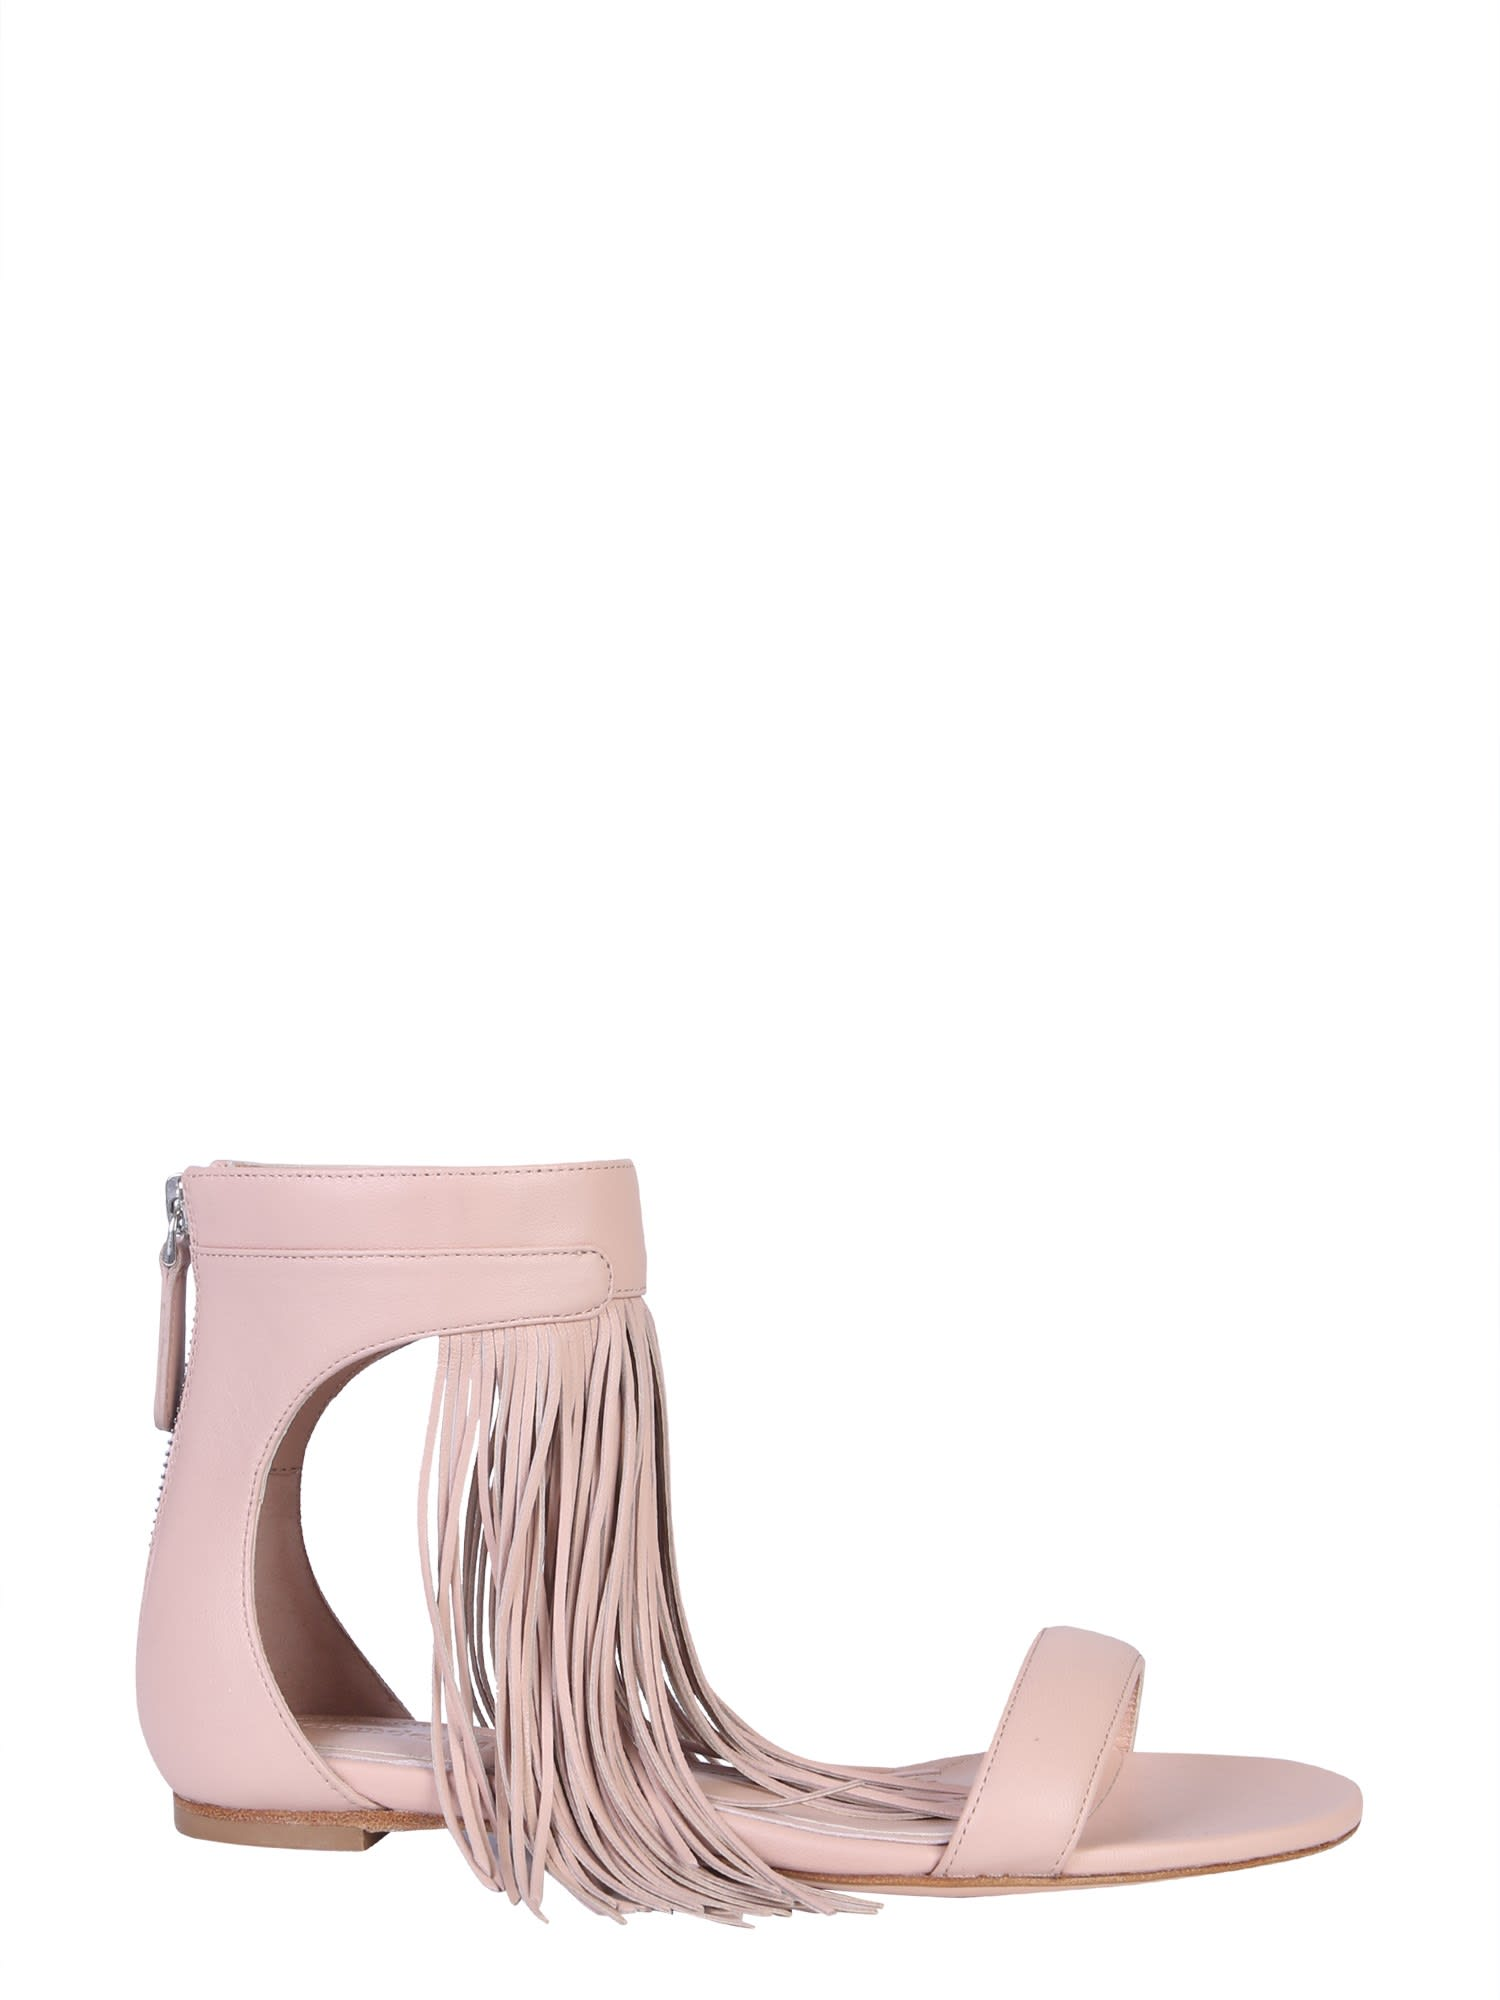 Alexander McQueen Sandal With Fringes